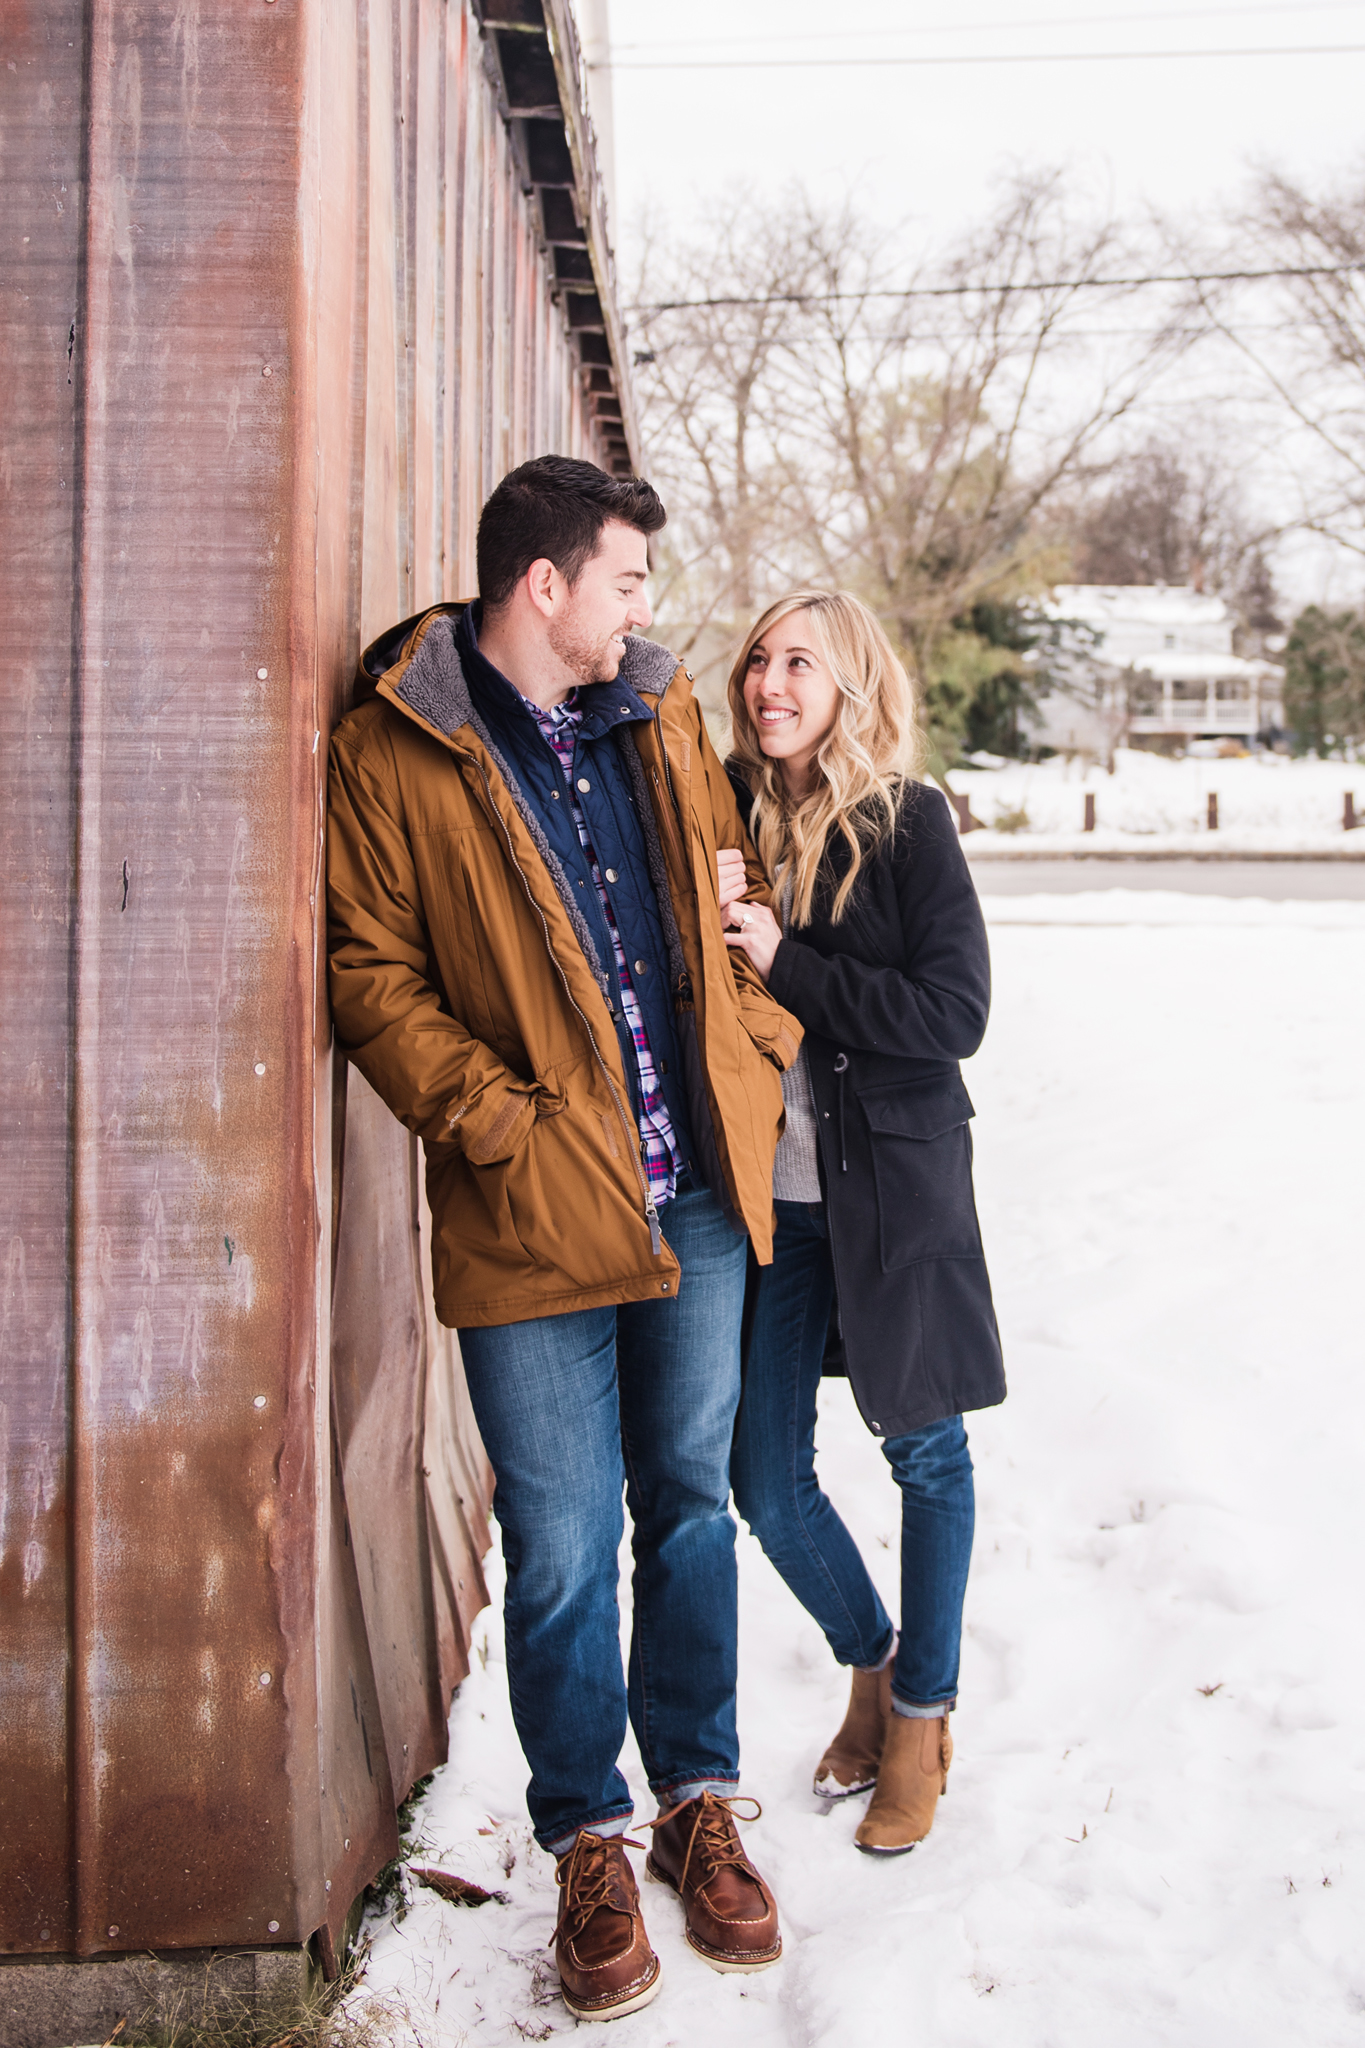 Schoen_Place_Rochester_Engagement_Session_JILL_STUDIO_Rochester_NY_Photographer_DSC_1139.jpg